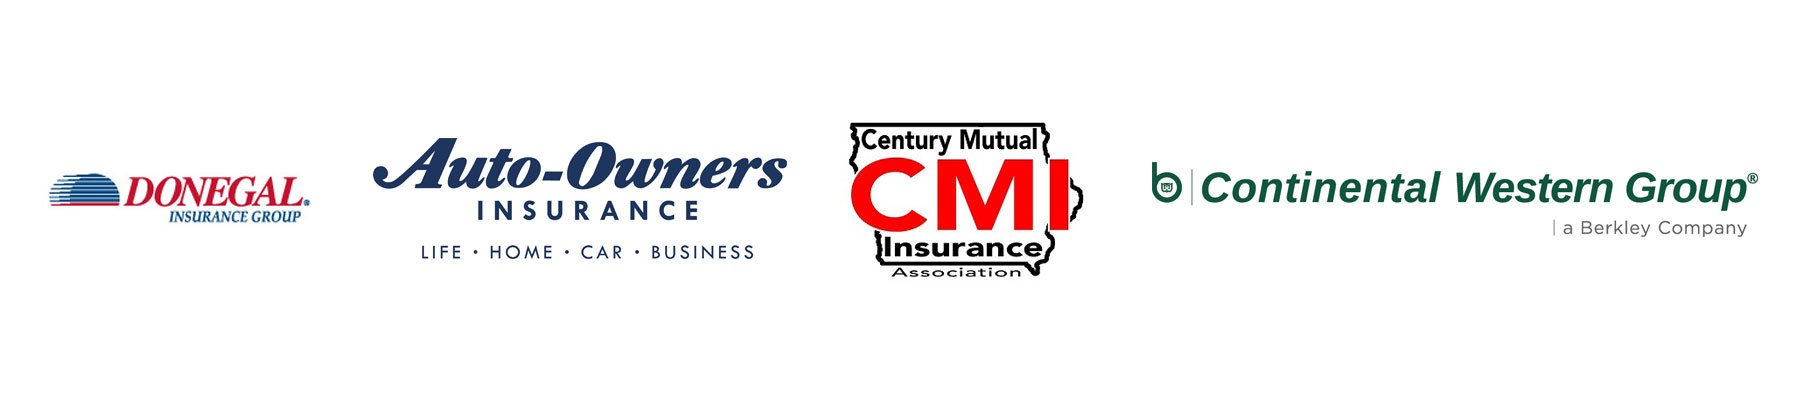 Gonegal Insurance Group Logo, Auto-Owners Insurance Logo, Century Mutual Insurance Association Logo, Continental Western Group Logo